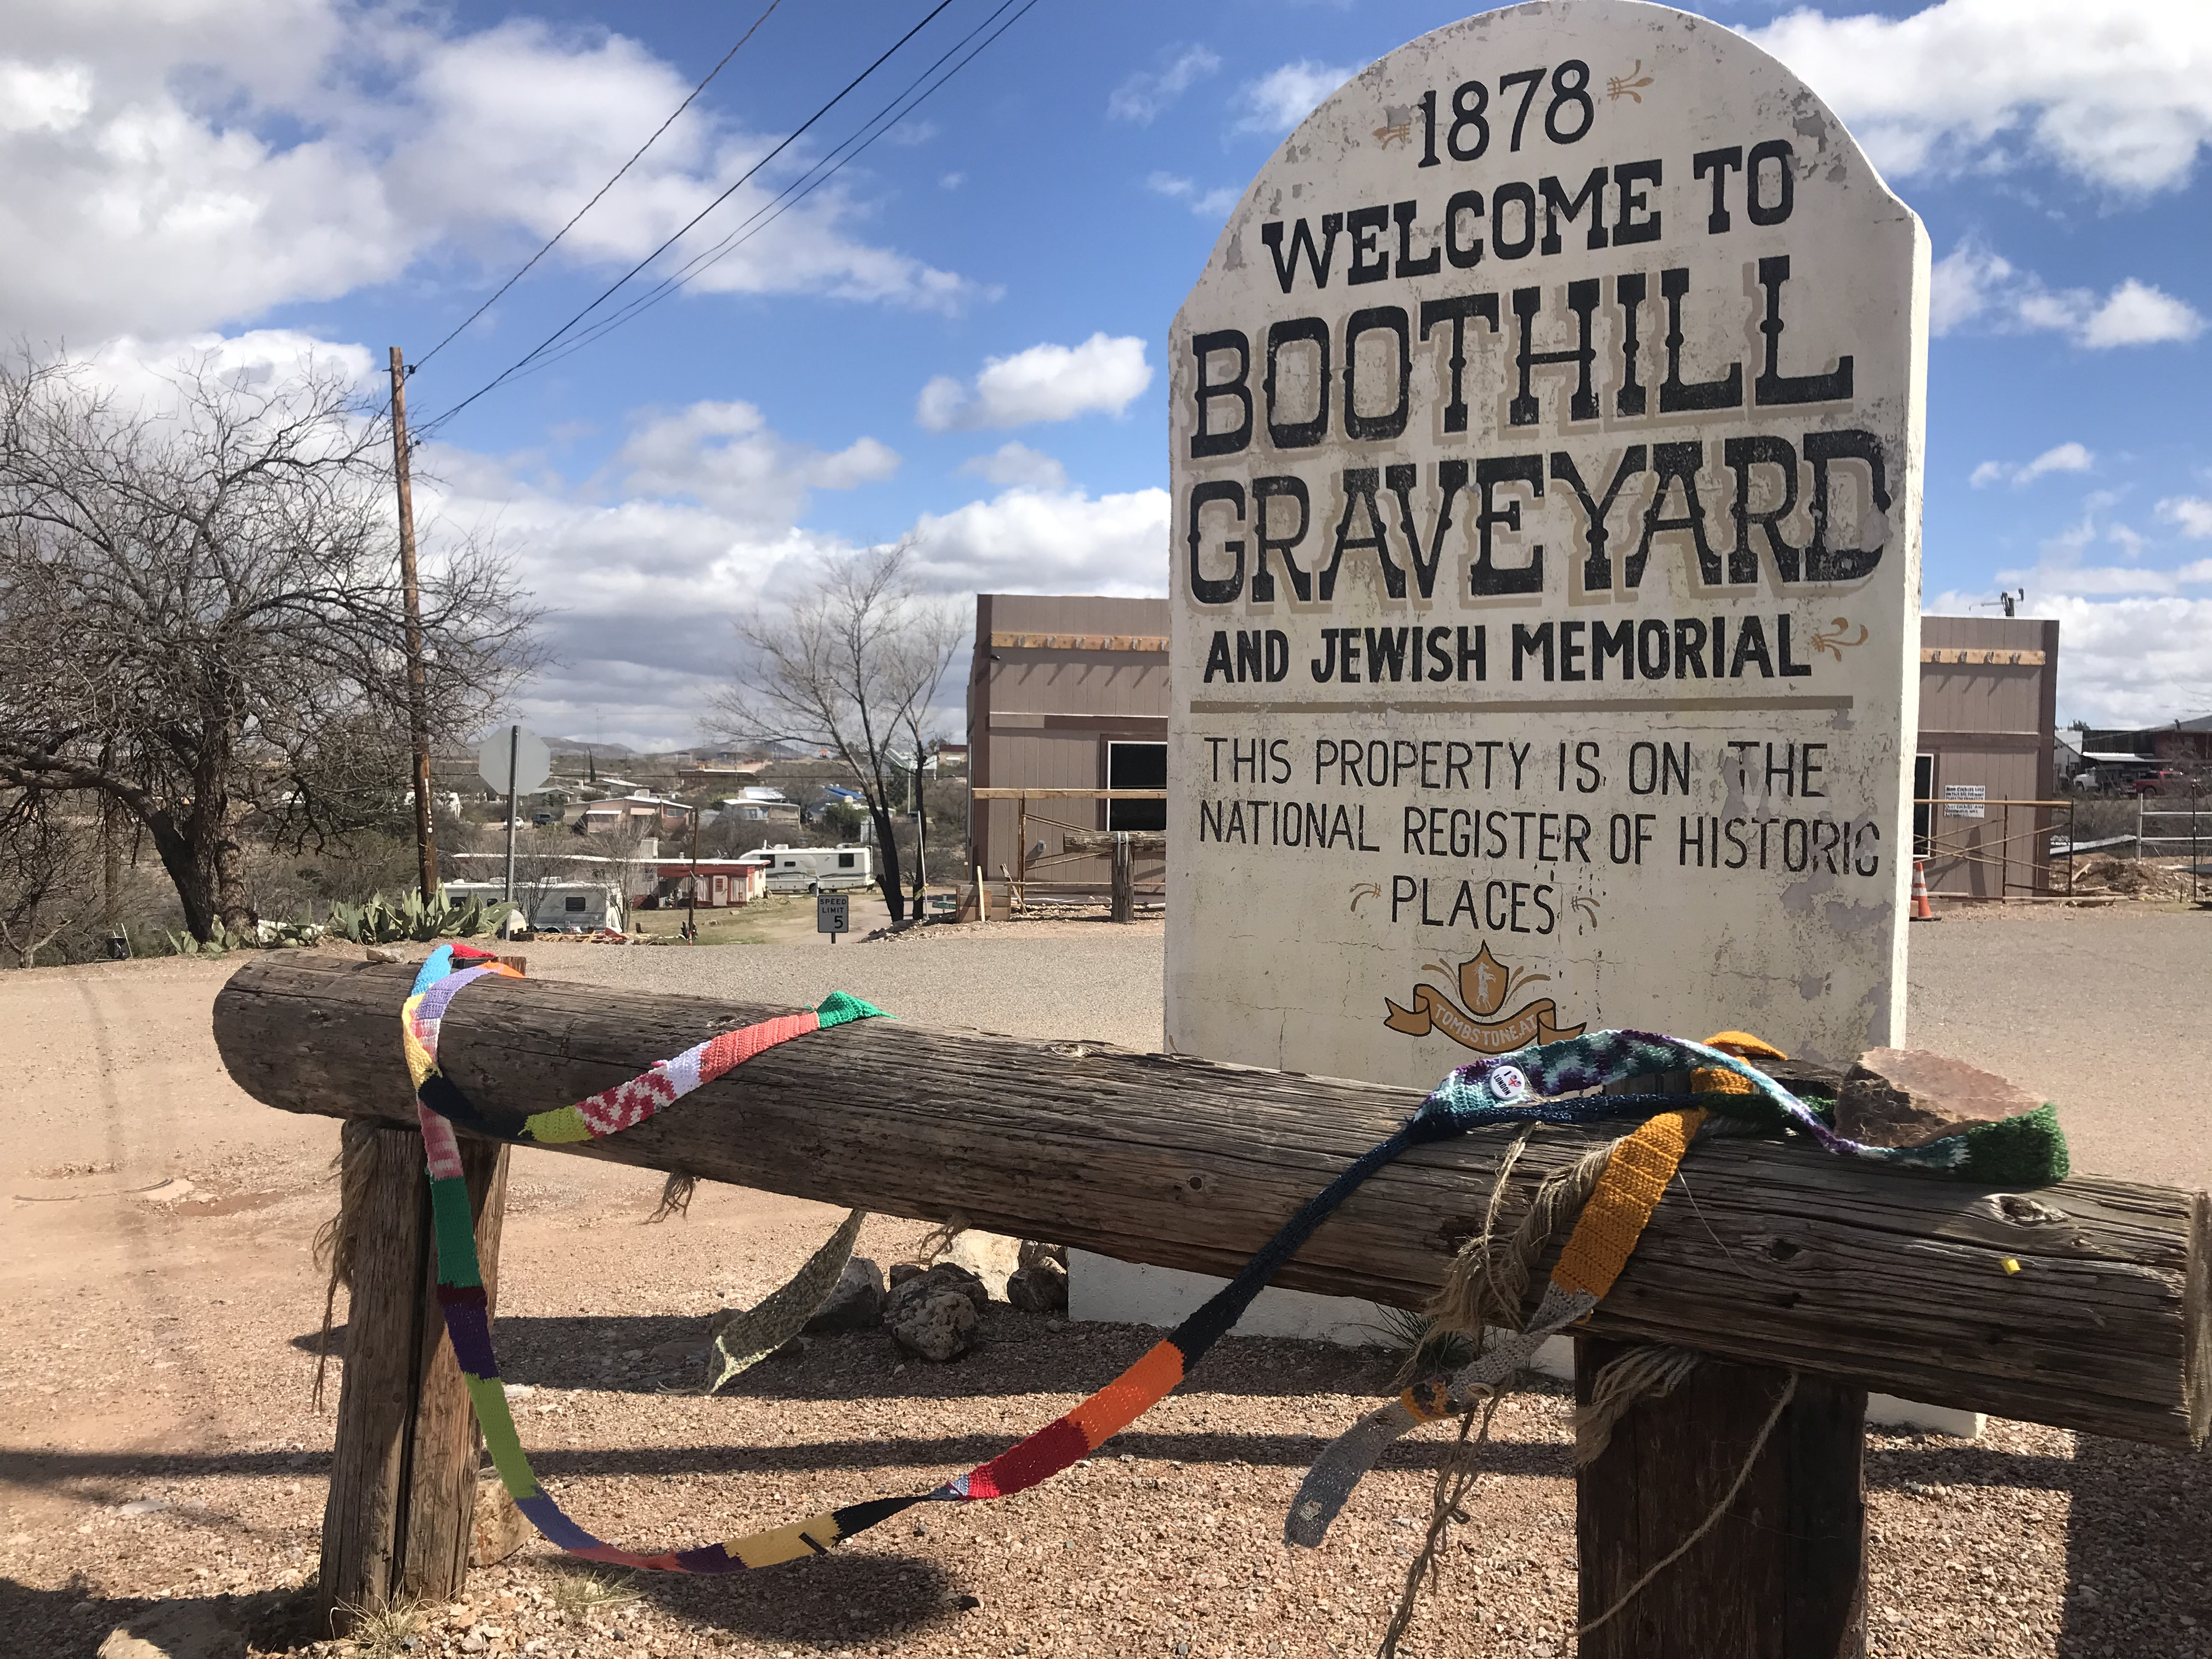 The Ugly Scarf at the Boothill Graveyard and Jewish Memorial